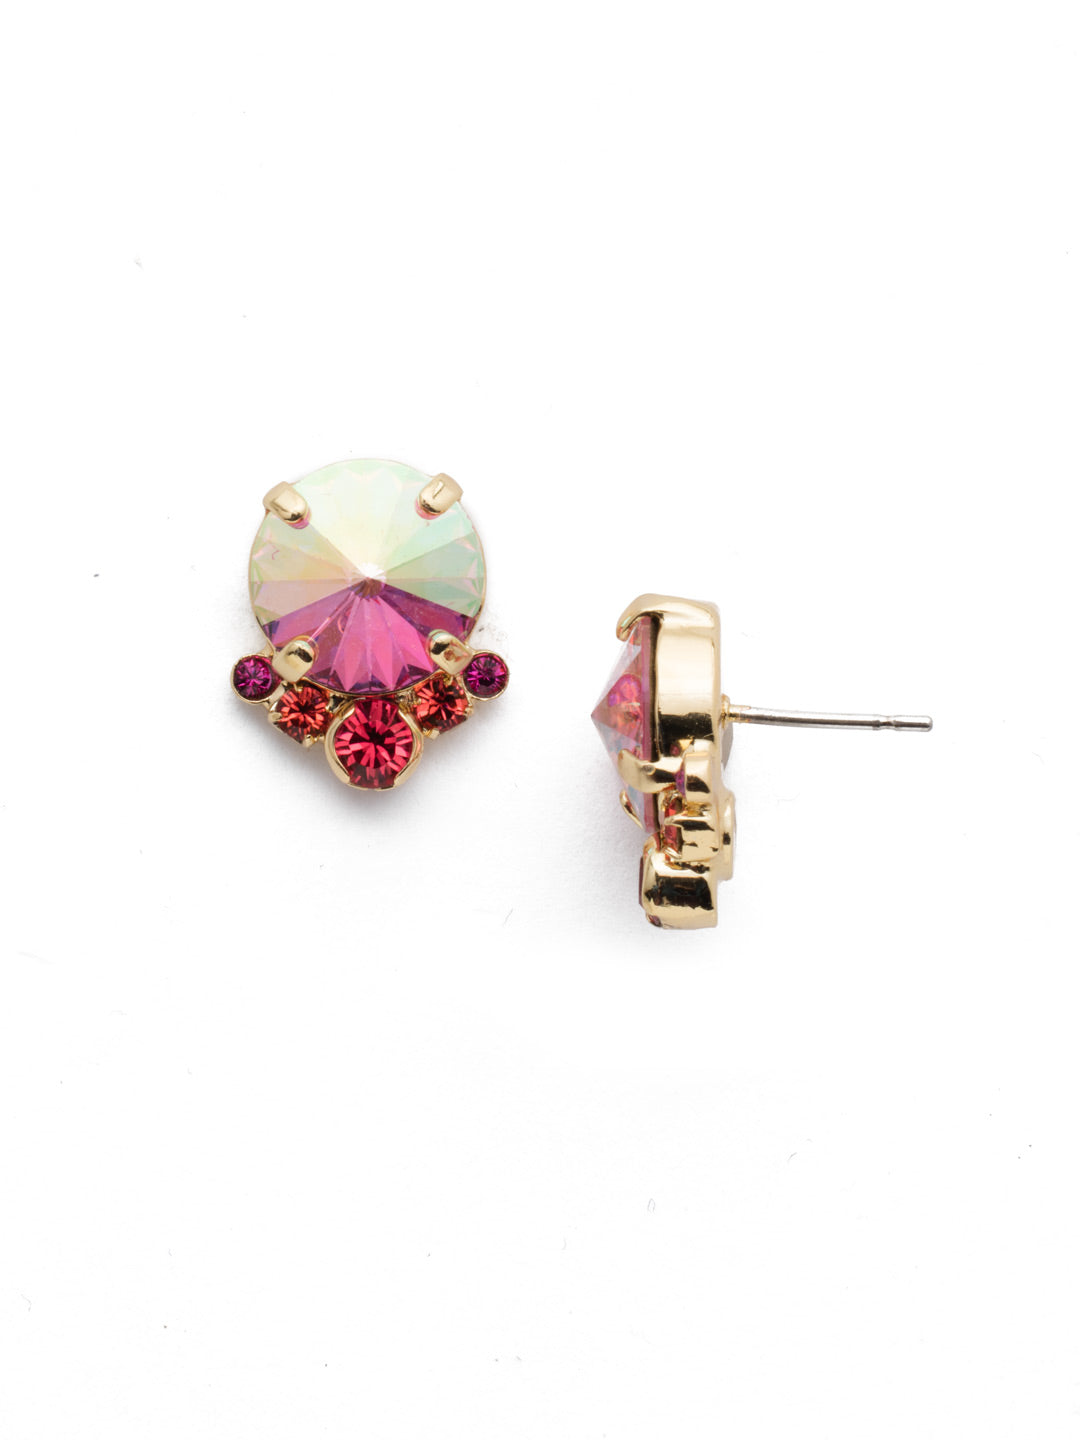 Regal Rounds Stud Earrings - EDH98BGBGA